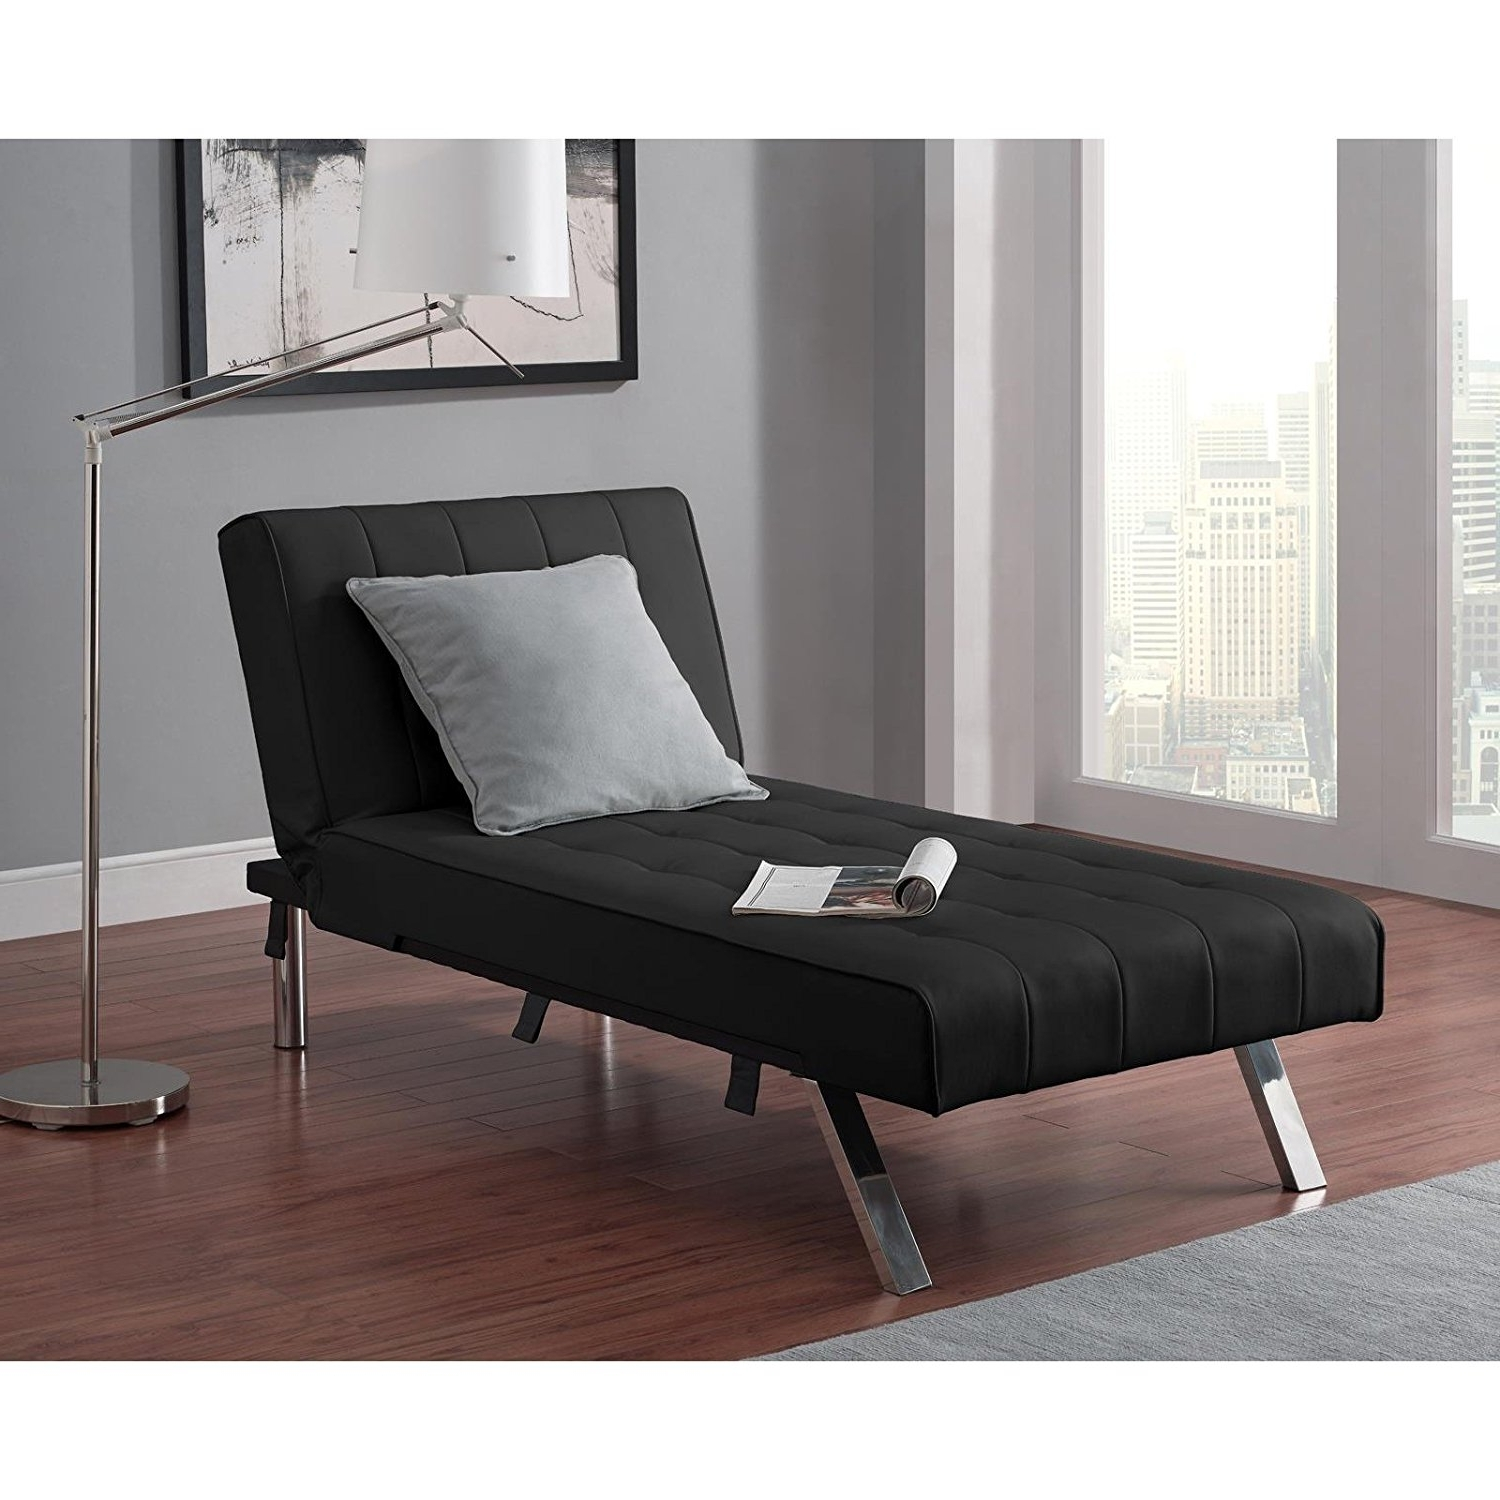 Futon Chaises Throughout Most Up To Date Amazon: Emily Futon With Chaise Lounger Super Bonus Set Black (View 5 of 15)